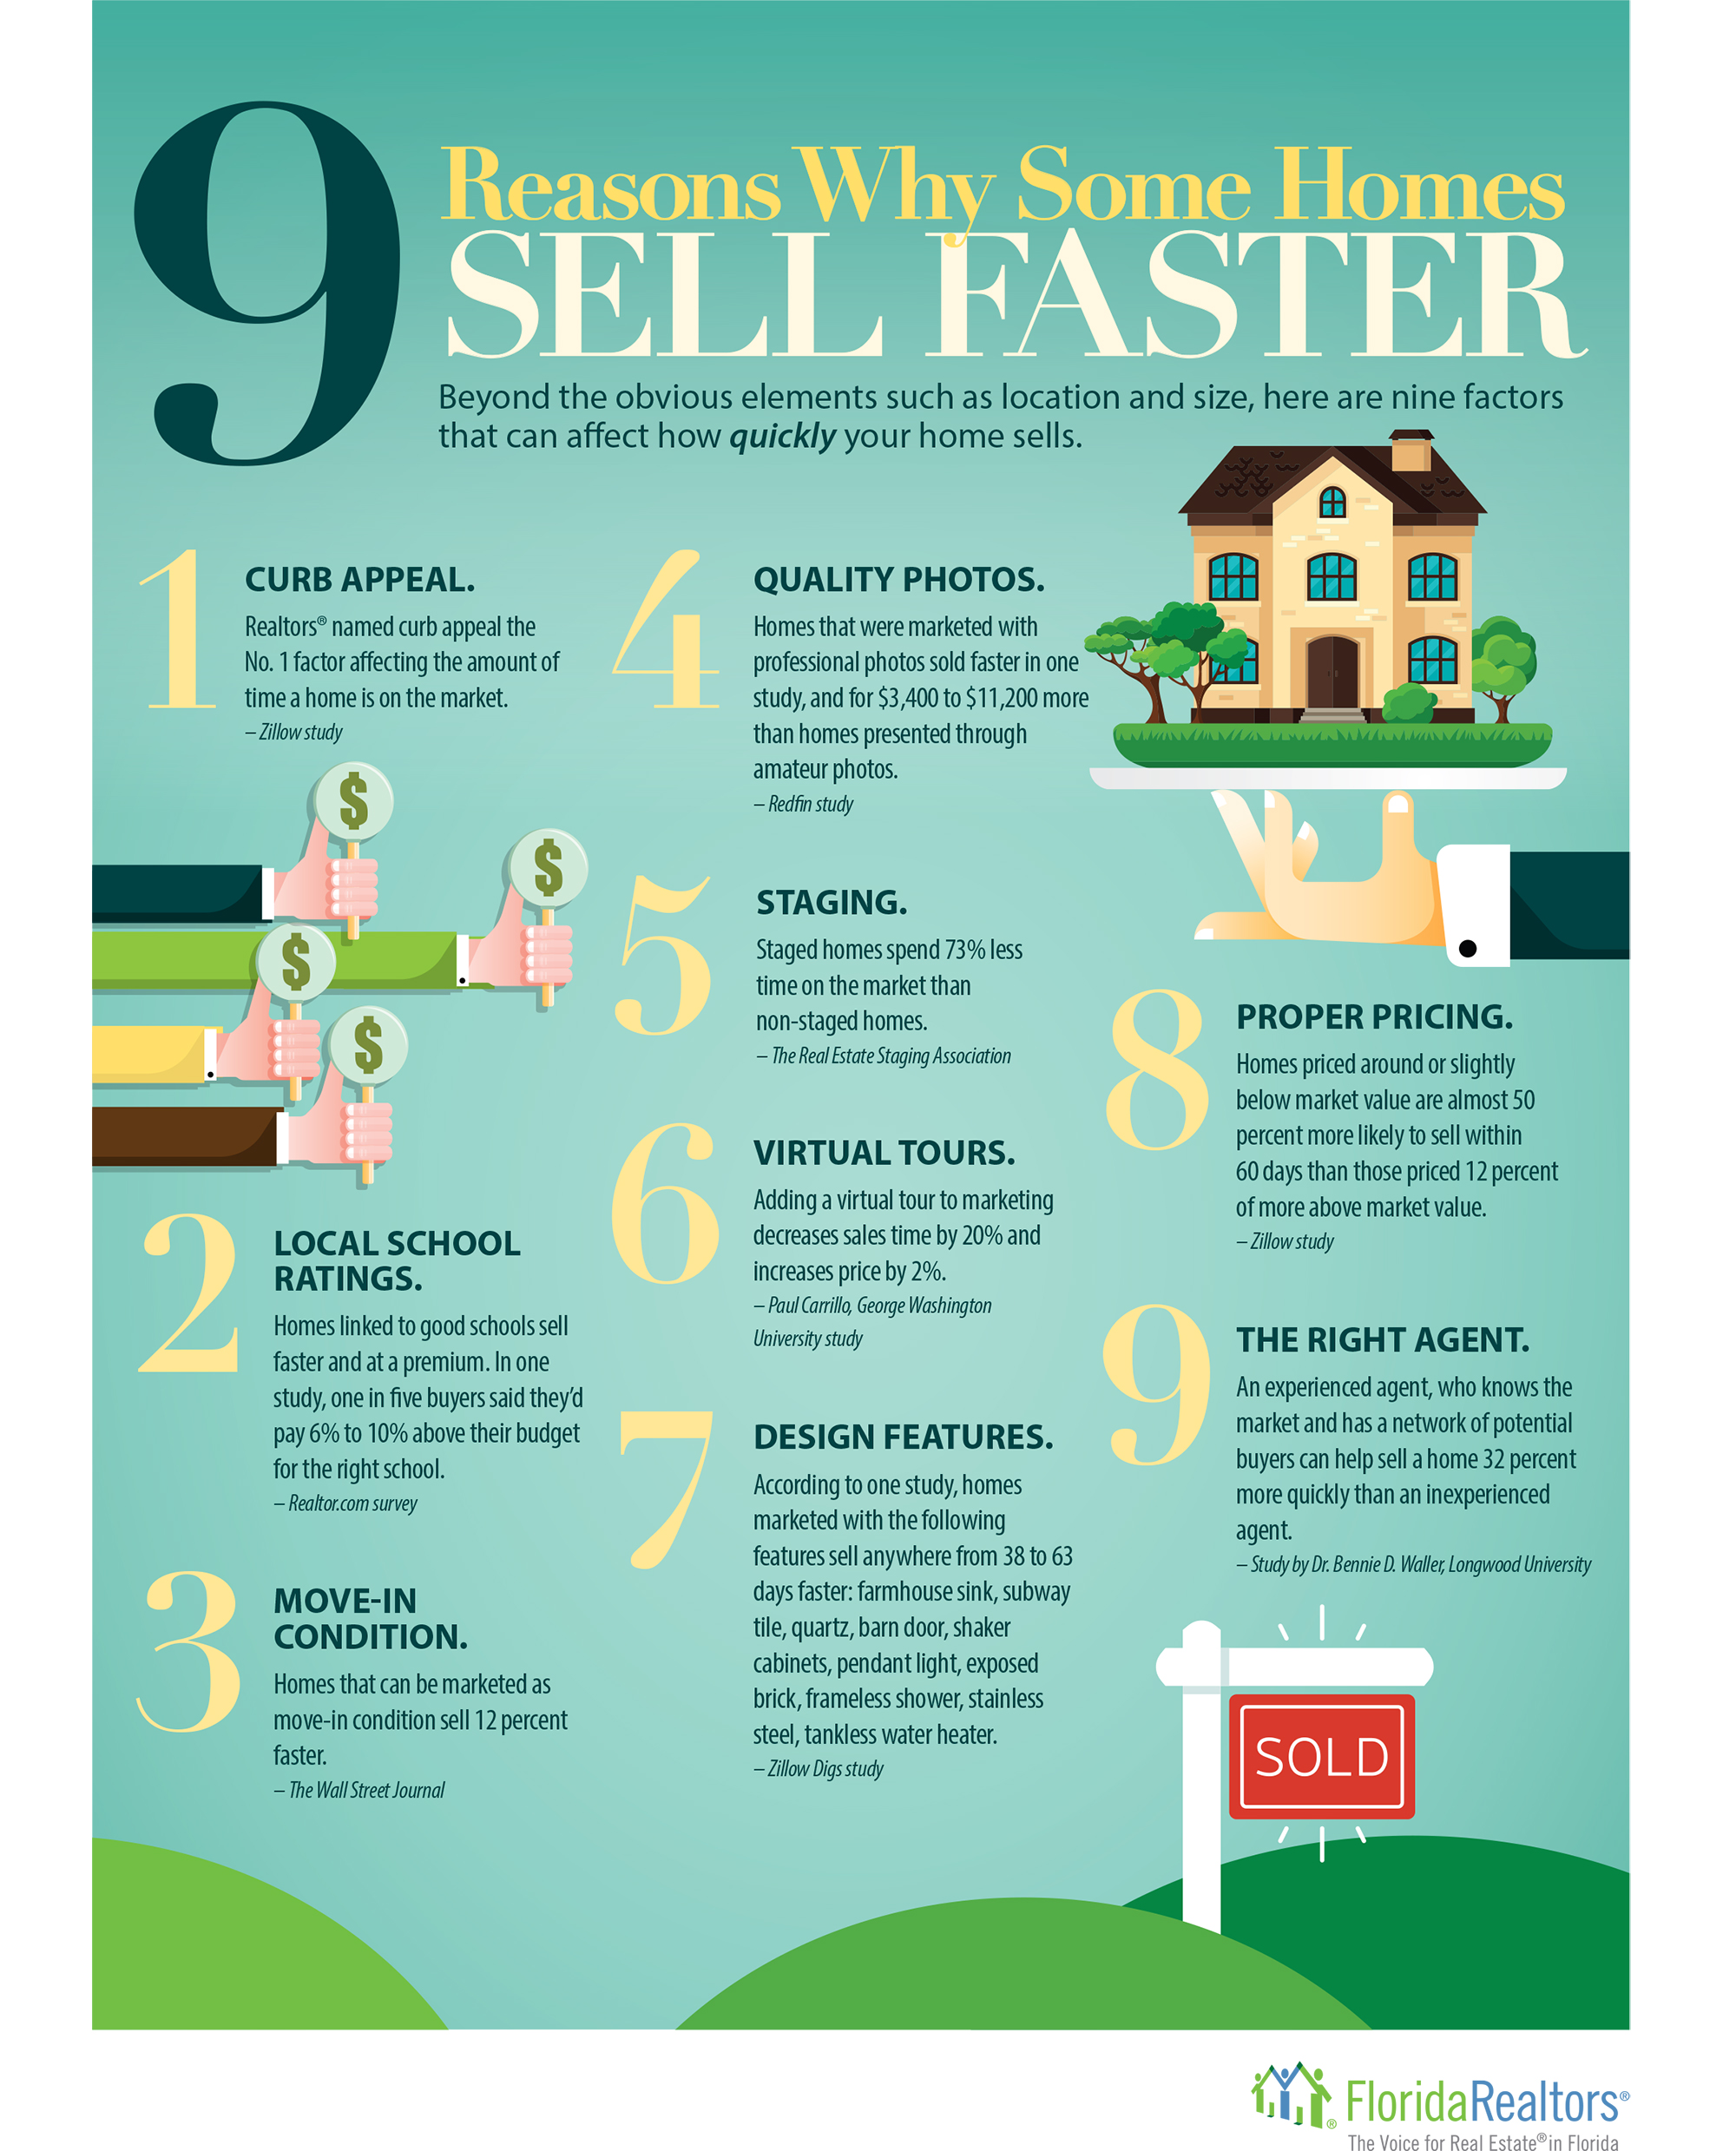 9 Reasons Homes Sell Faster